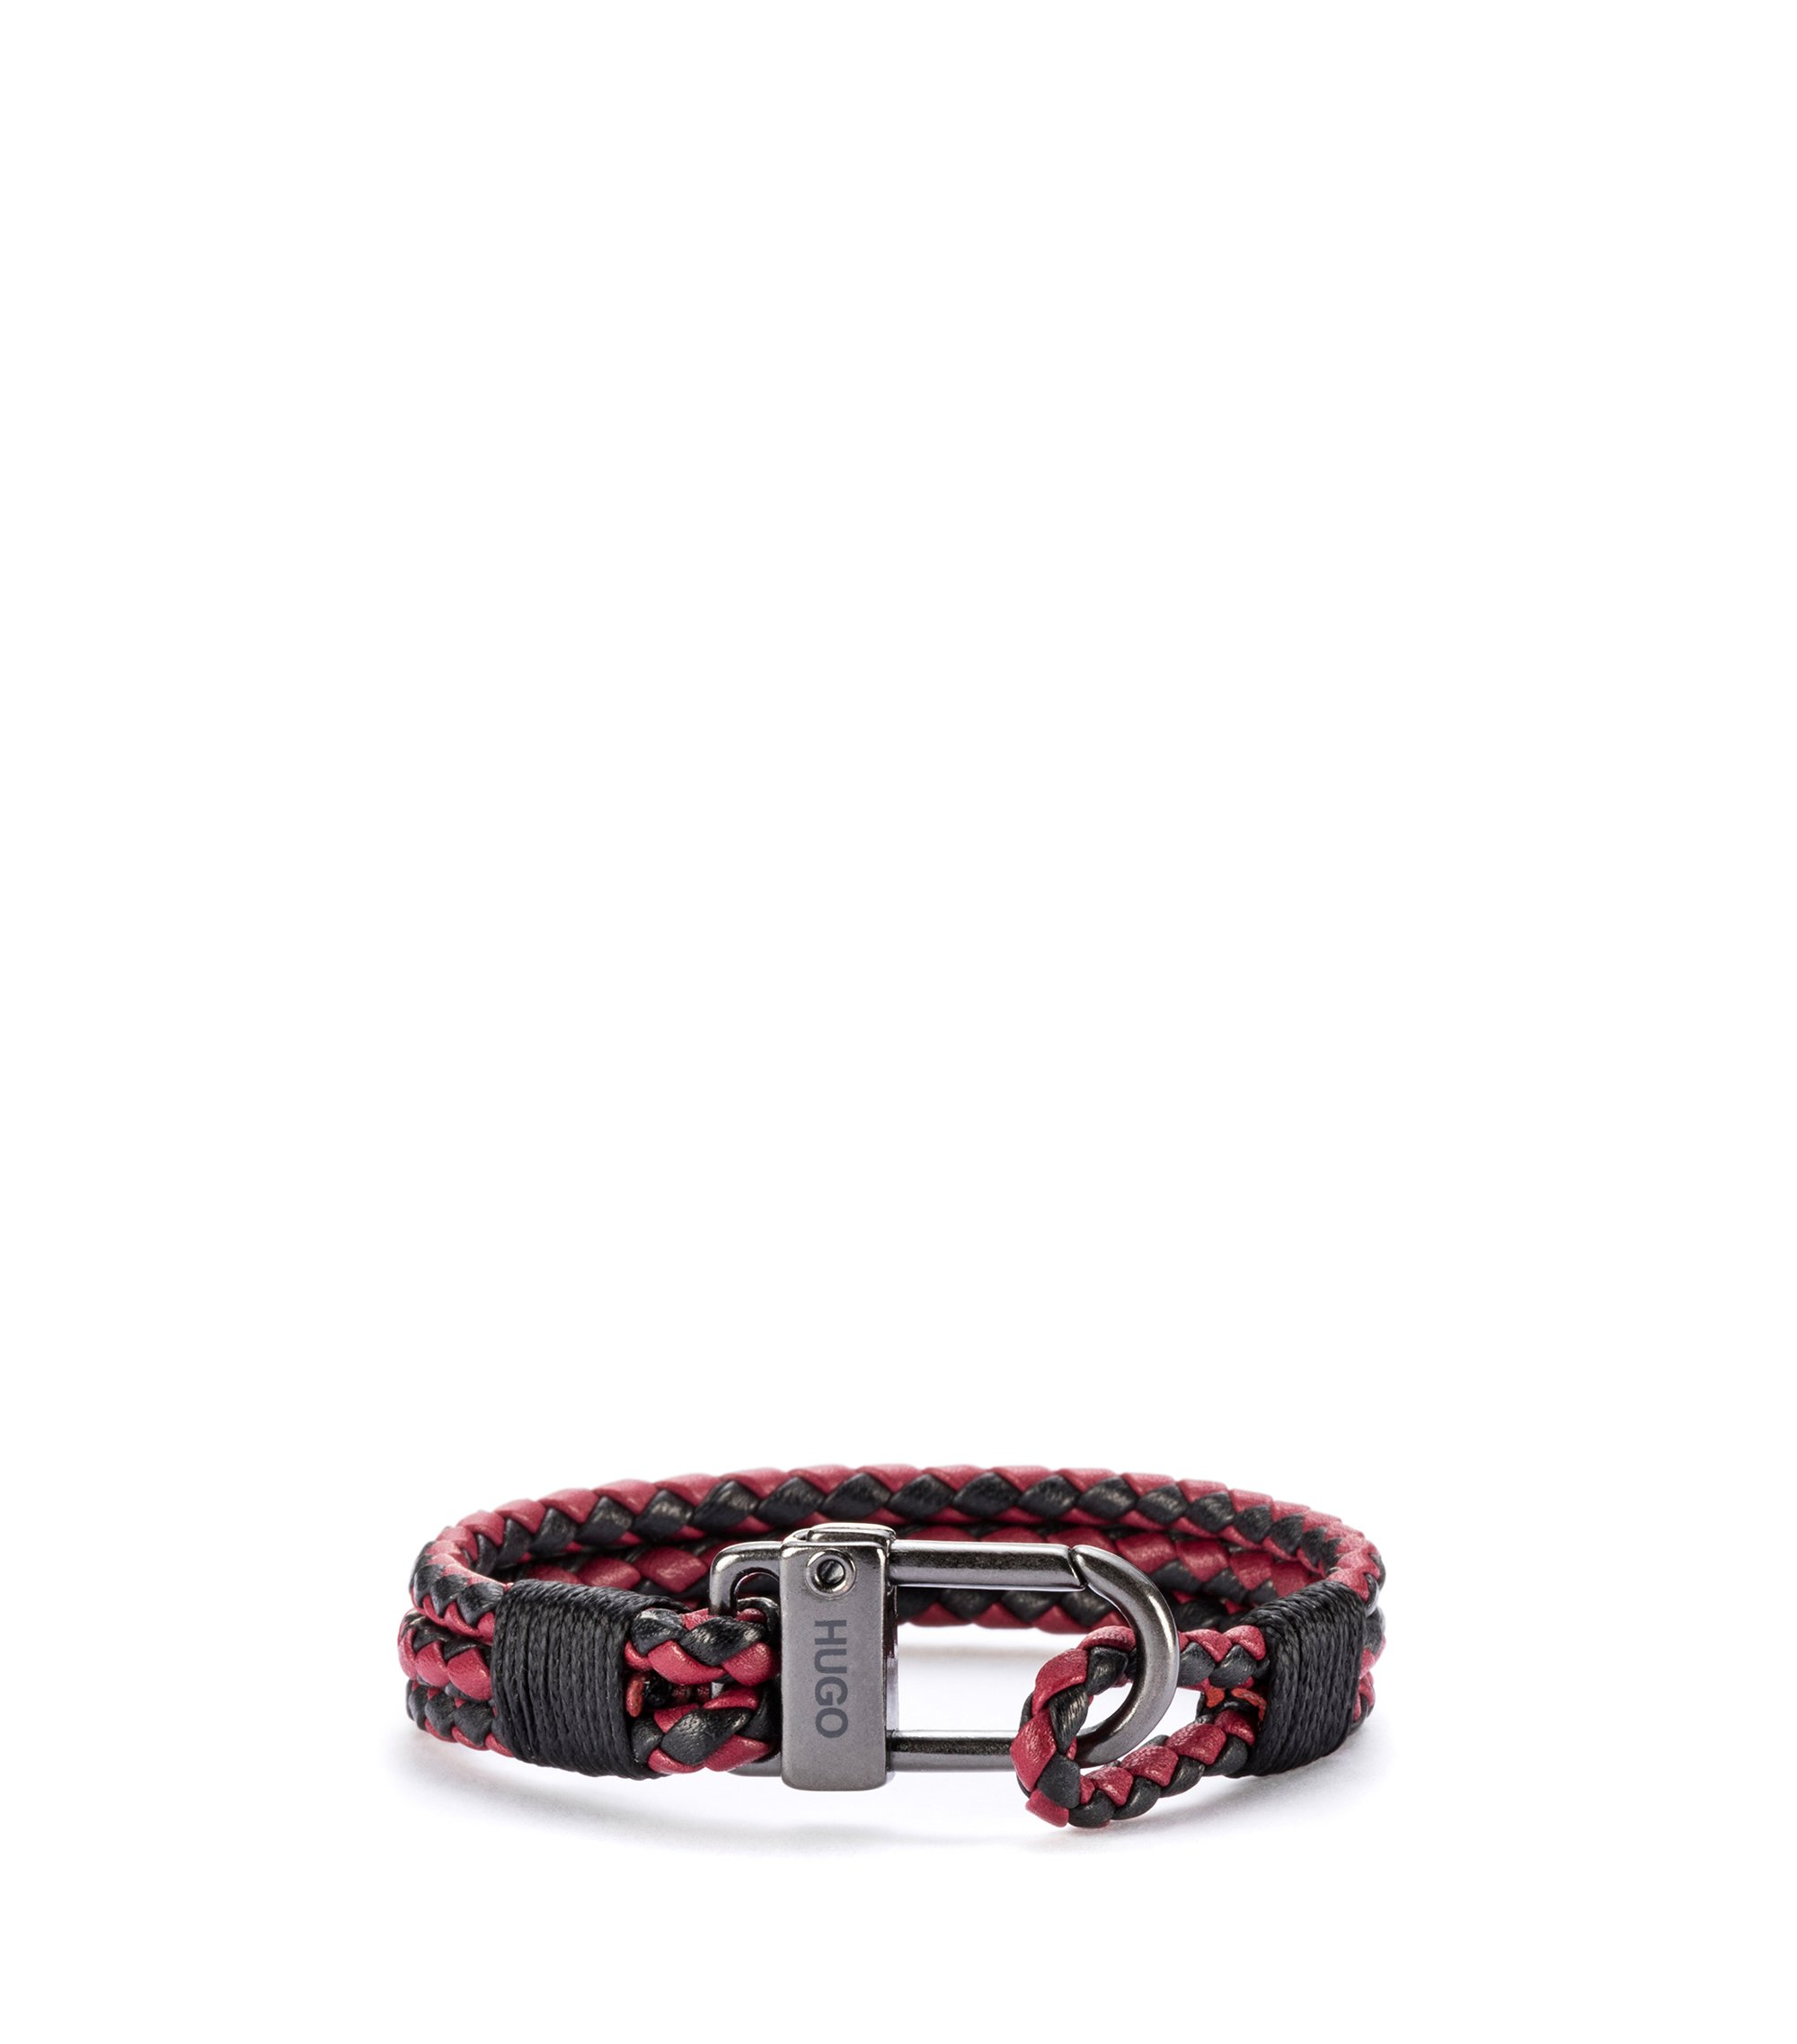 Braided Italian leather bracelet with carabiner fastening, Patterned